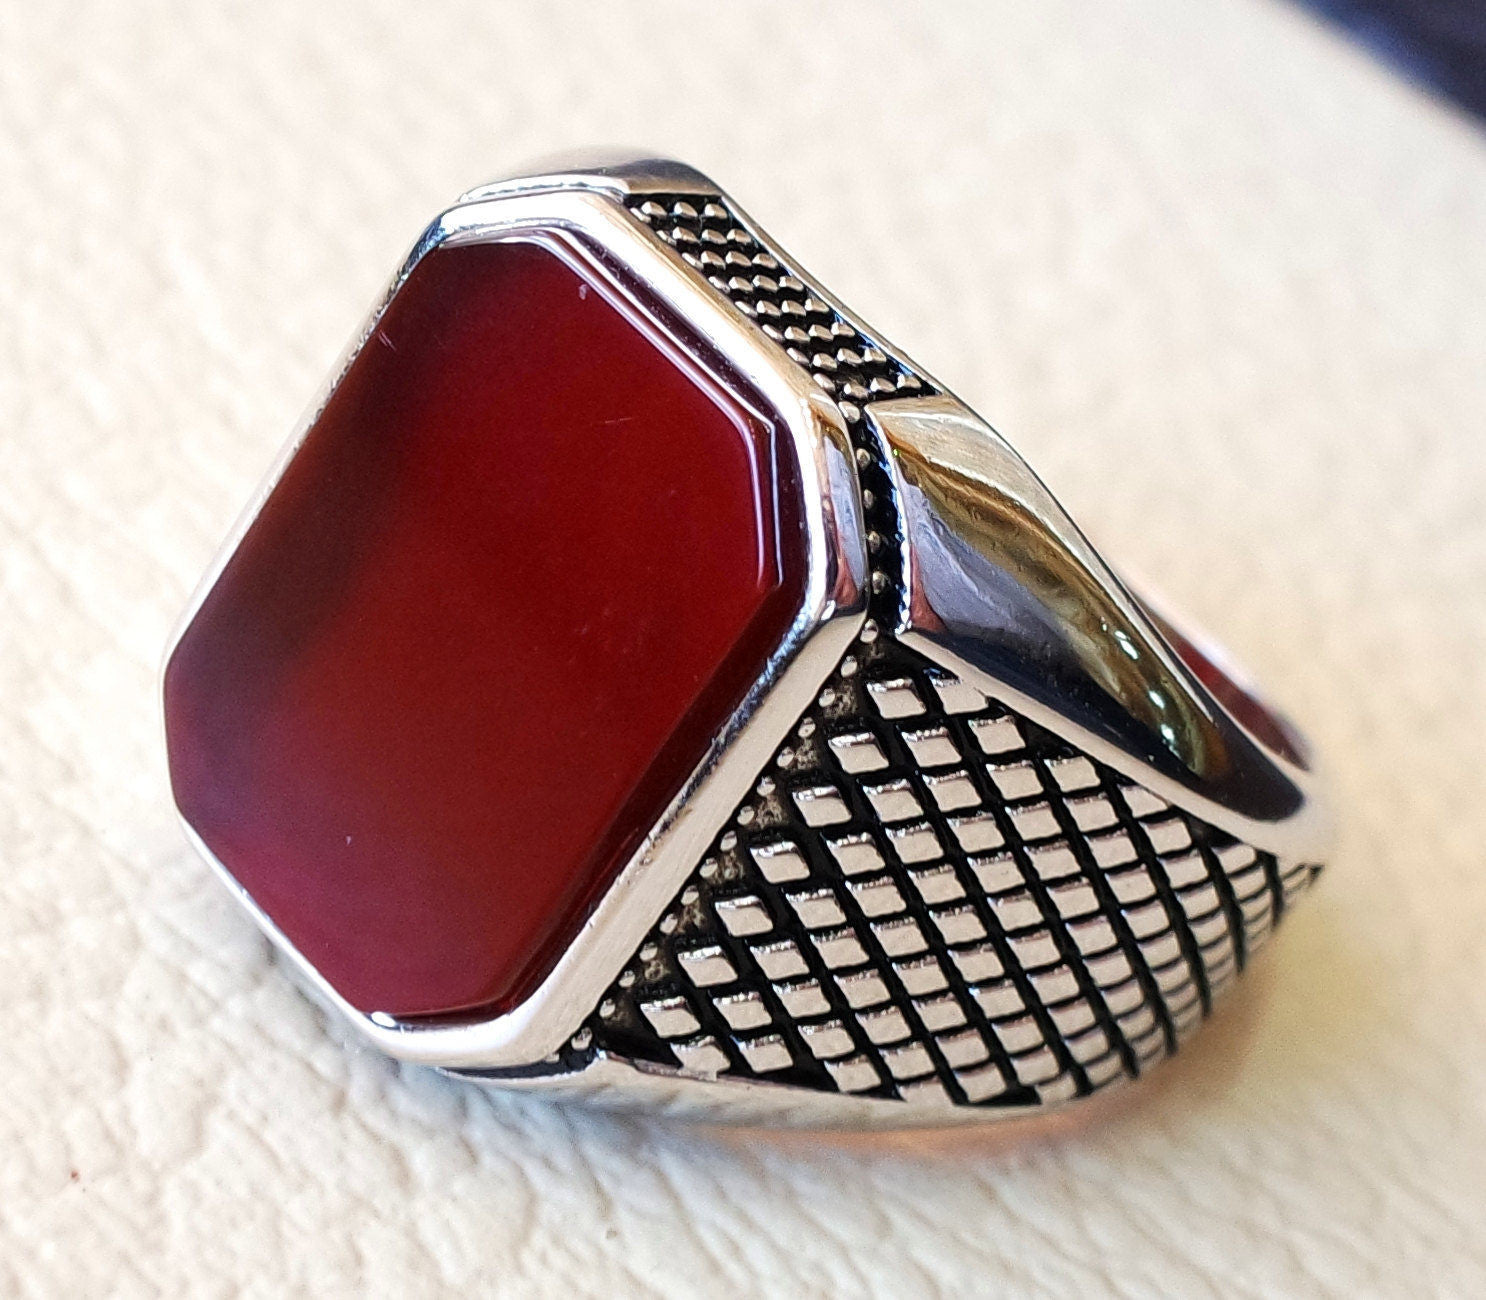 cushion rectangular octagon agate red aqeeq carnelian man ring sterling silver 925 natural stone gem all sizes jewelry fast shipping